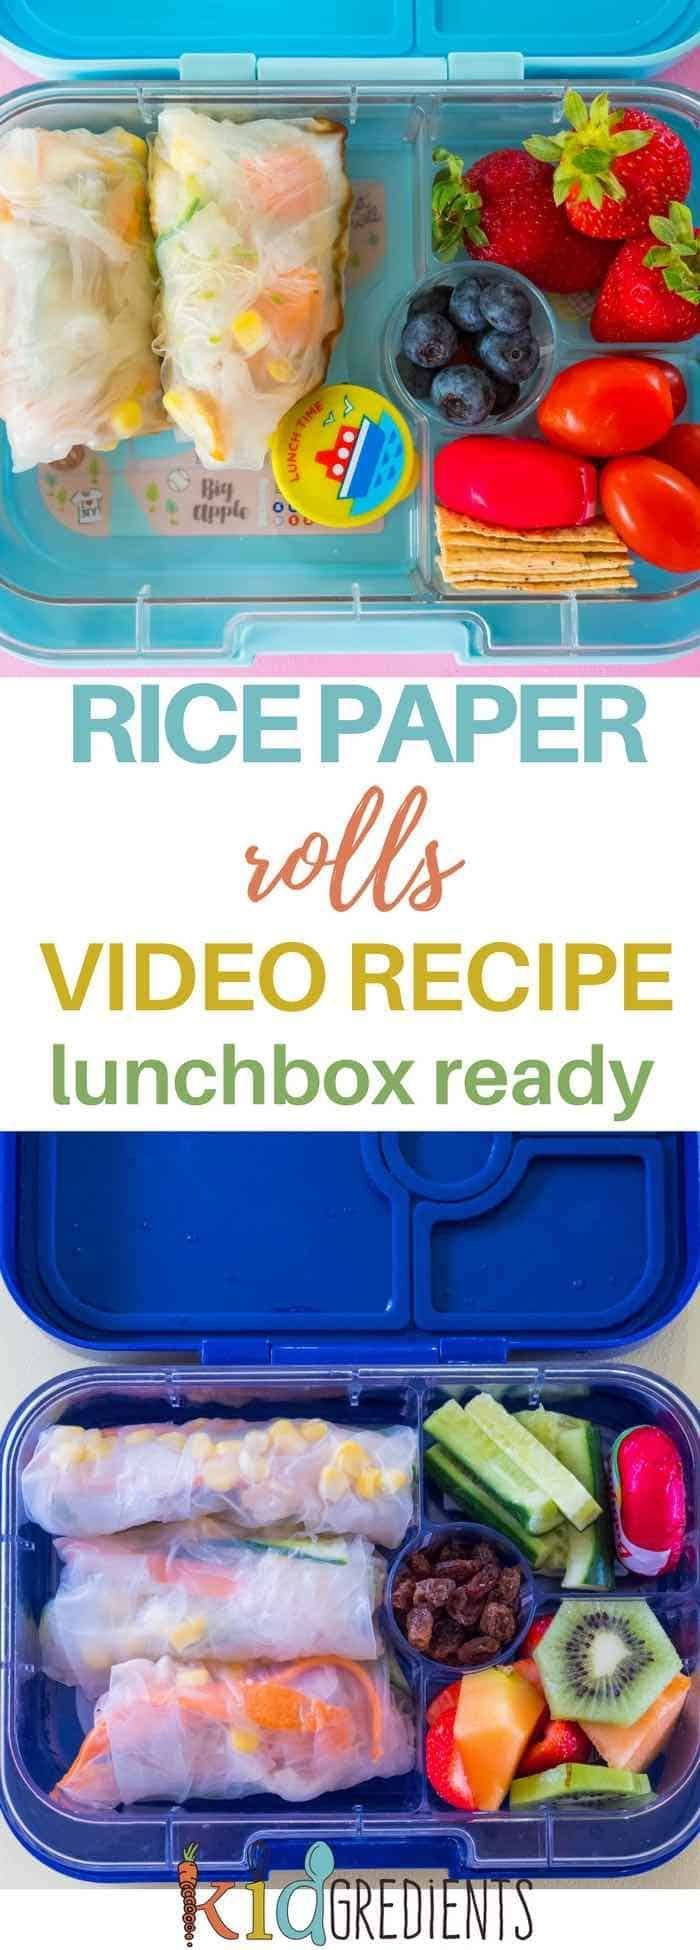 Easy to make and versatile, these rice paper rolls are perfect for the lunchbox! #kidsfood #healthykids #yum via @kidgredients